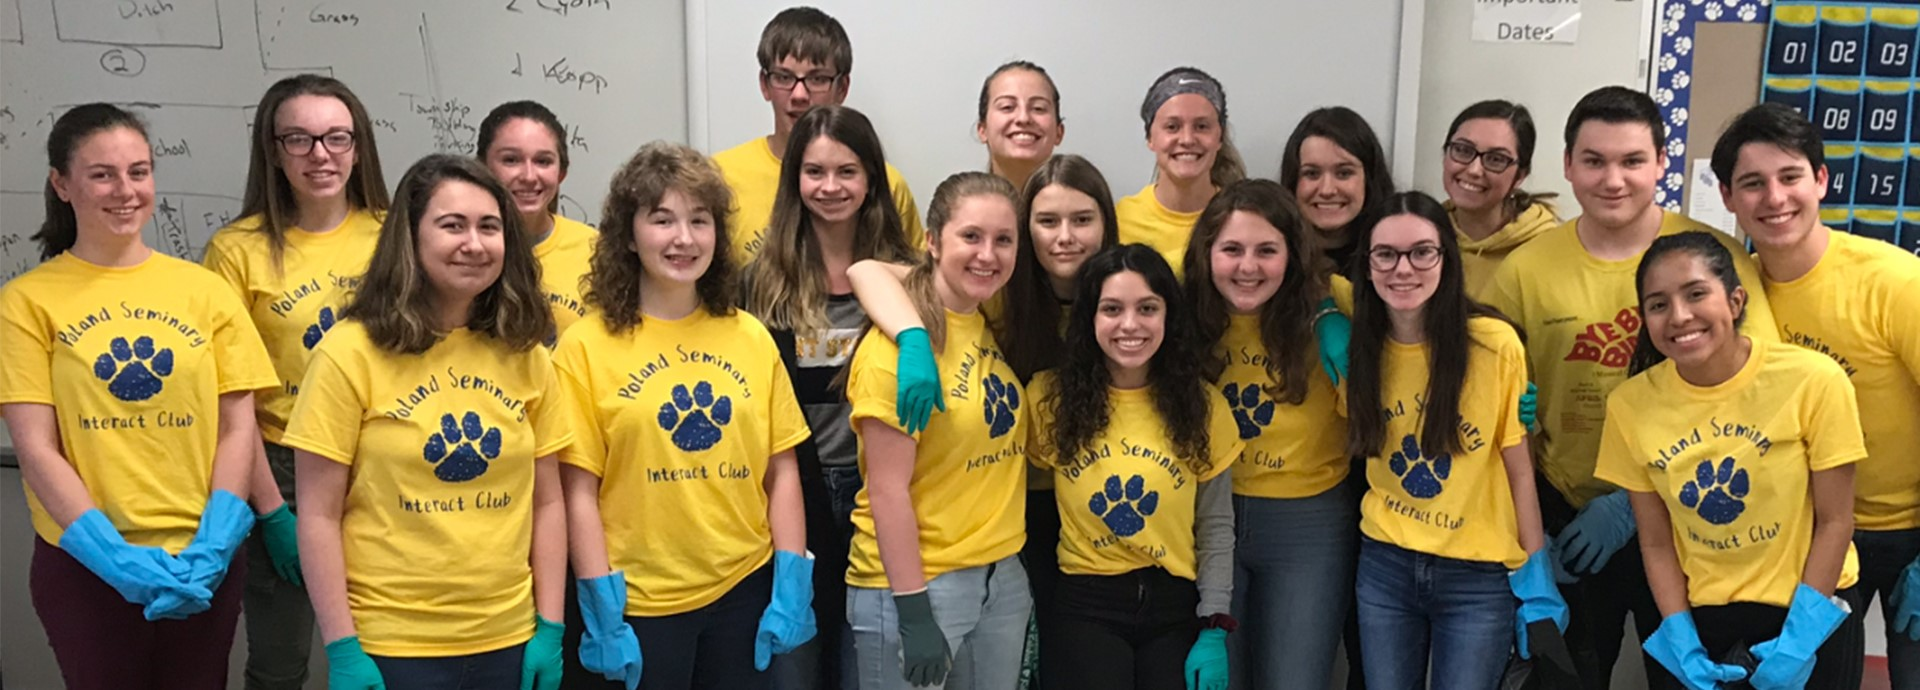 Interact Club PSHS Campus Clean Up